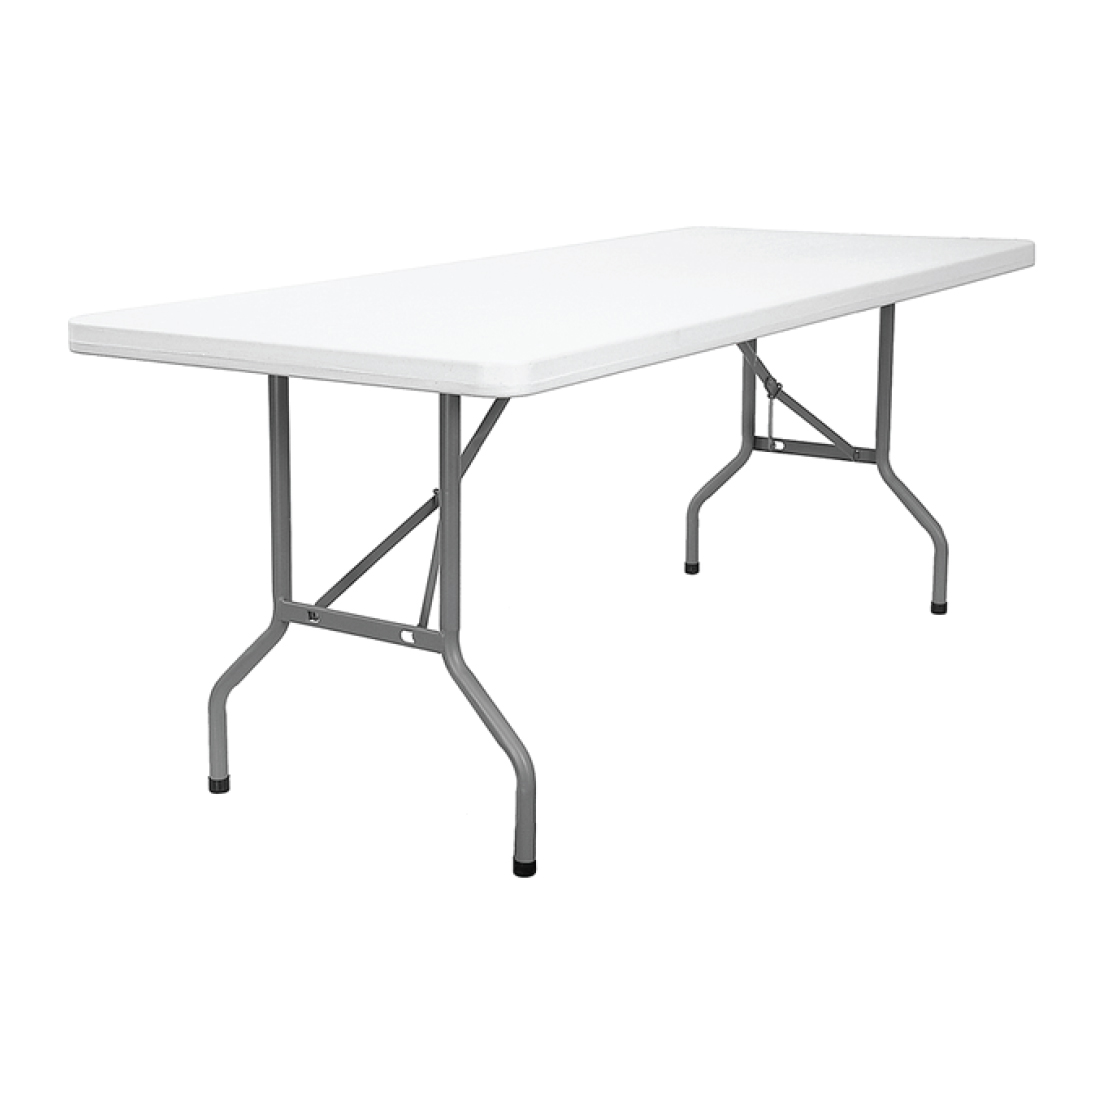 safety first folding table and chairs adjustable height office chair galt littlepage